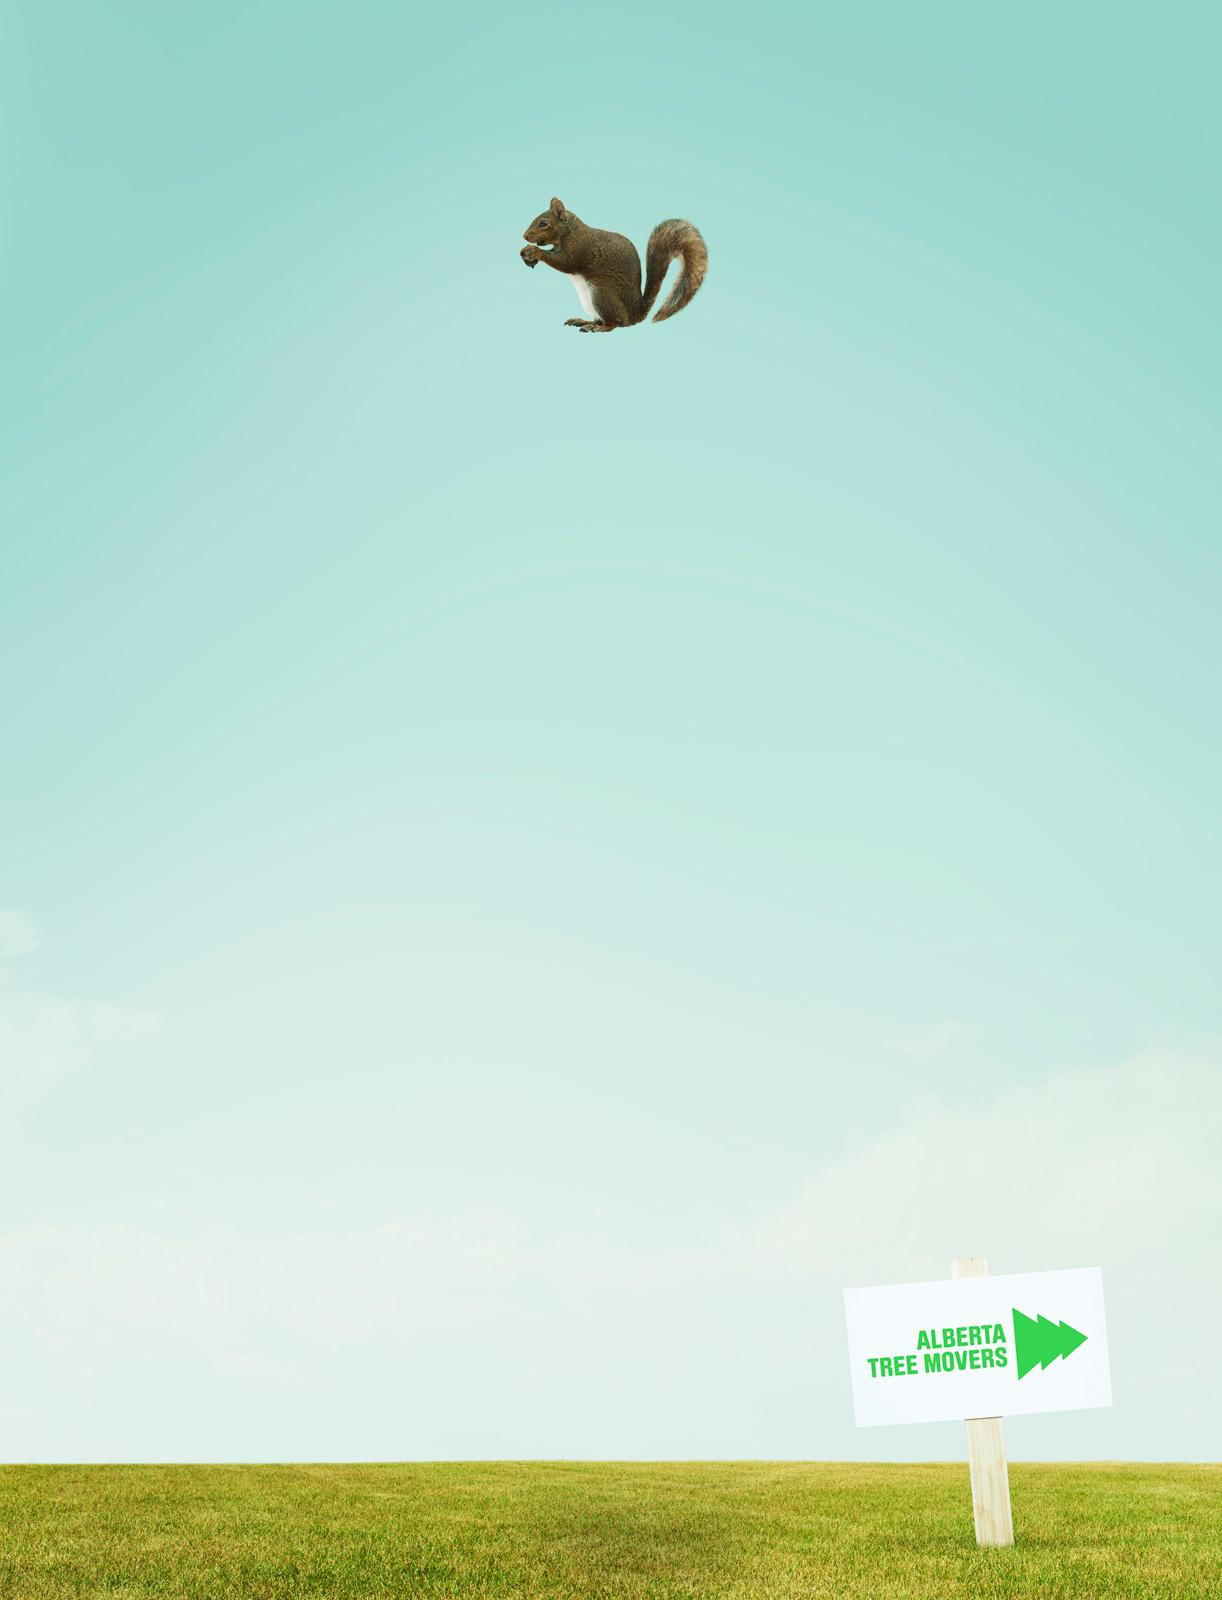 Alberta Tree Movers Print Ad -  Squirrel